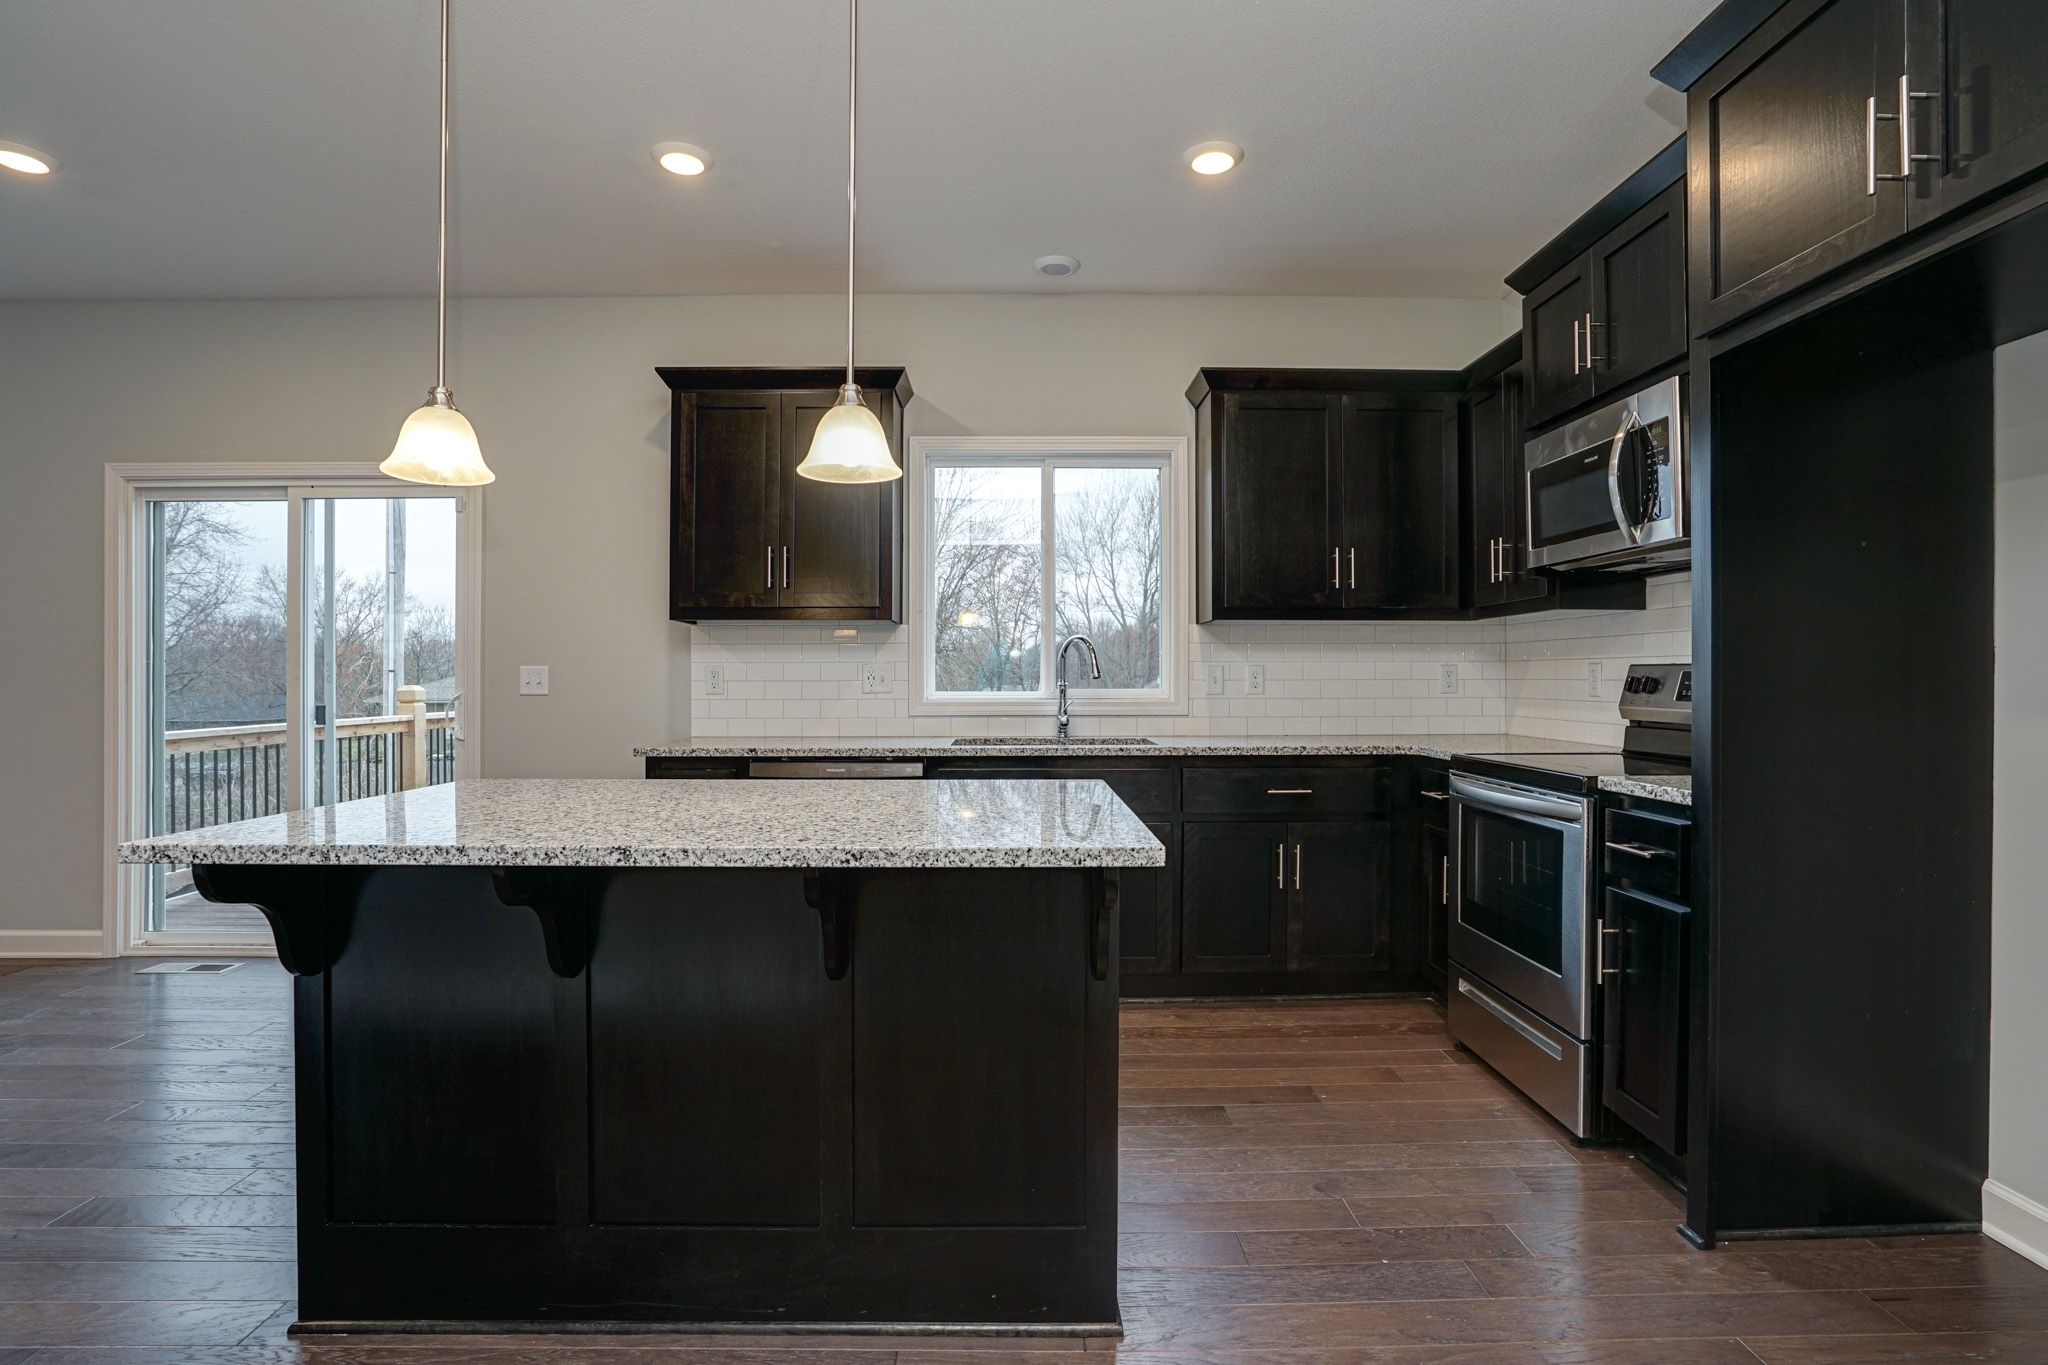 Kitchen featured in the Brookside - IA By Summit Homes in Des Moines, IA